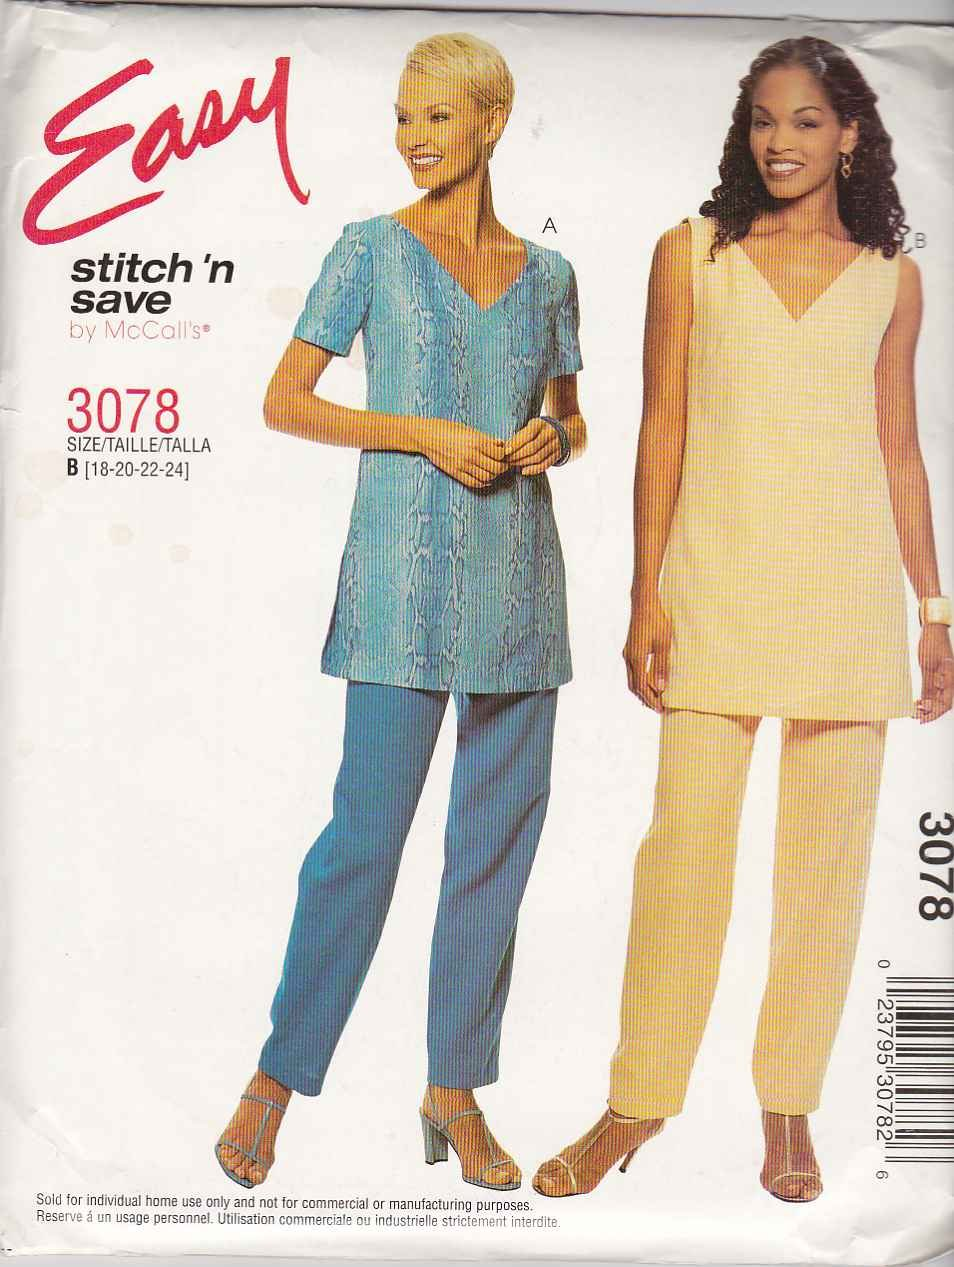 McCall's Sewing Pattern 3078 Misses Size 18-24 Easy Short Sleeve Sleeveless Pullover Top Pants